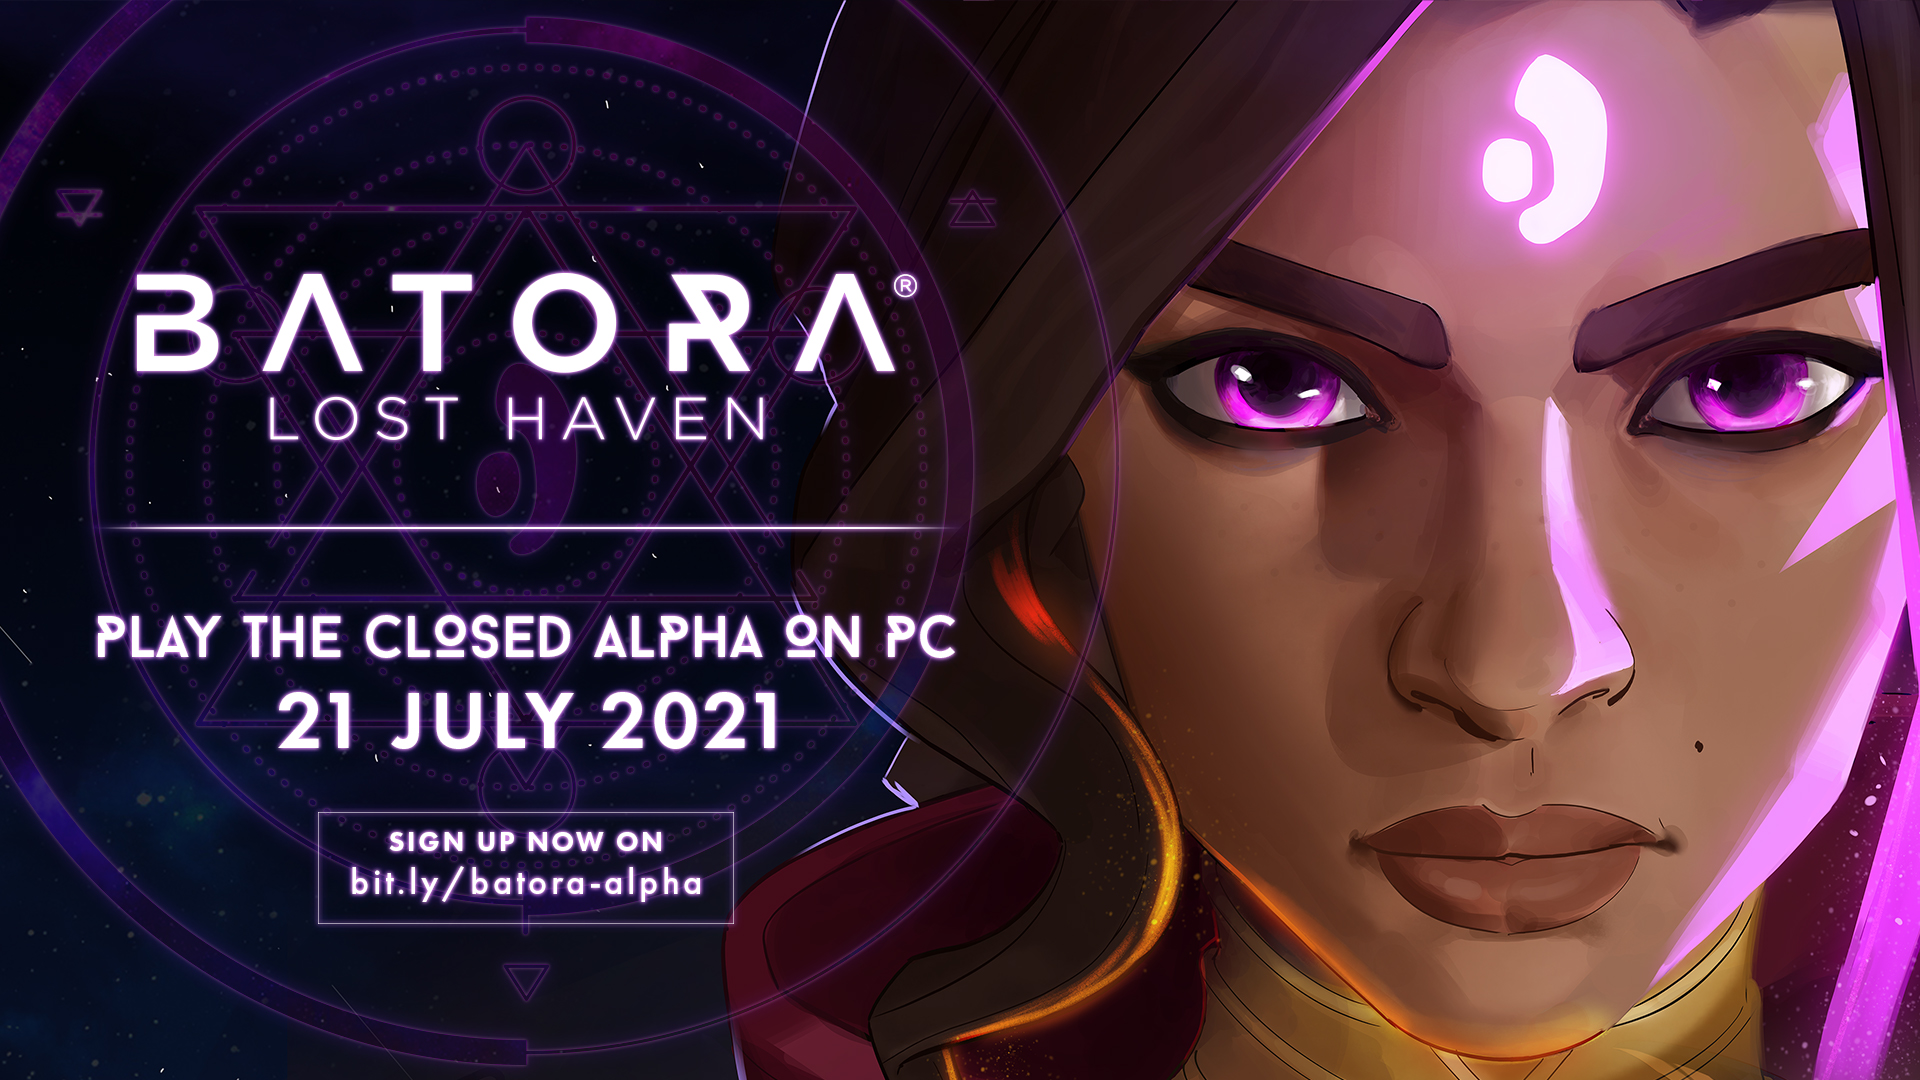 Join the Closed Alpha to be among the firsts to have a taste of Batora: Lost Haven!